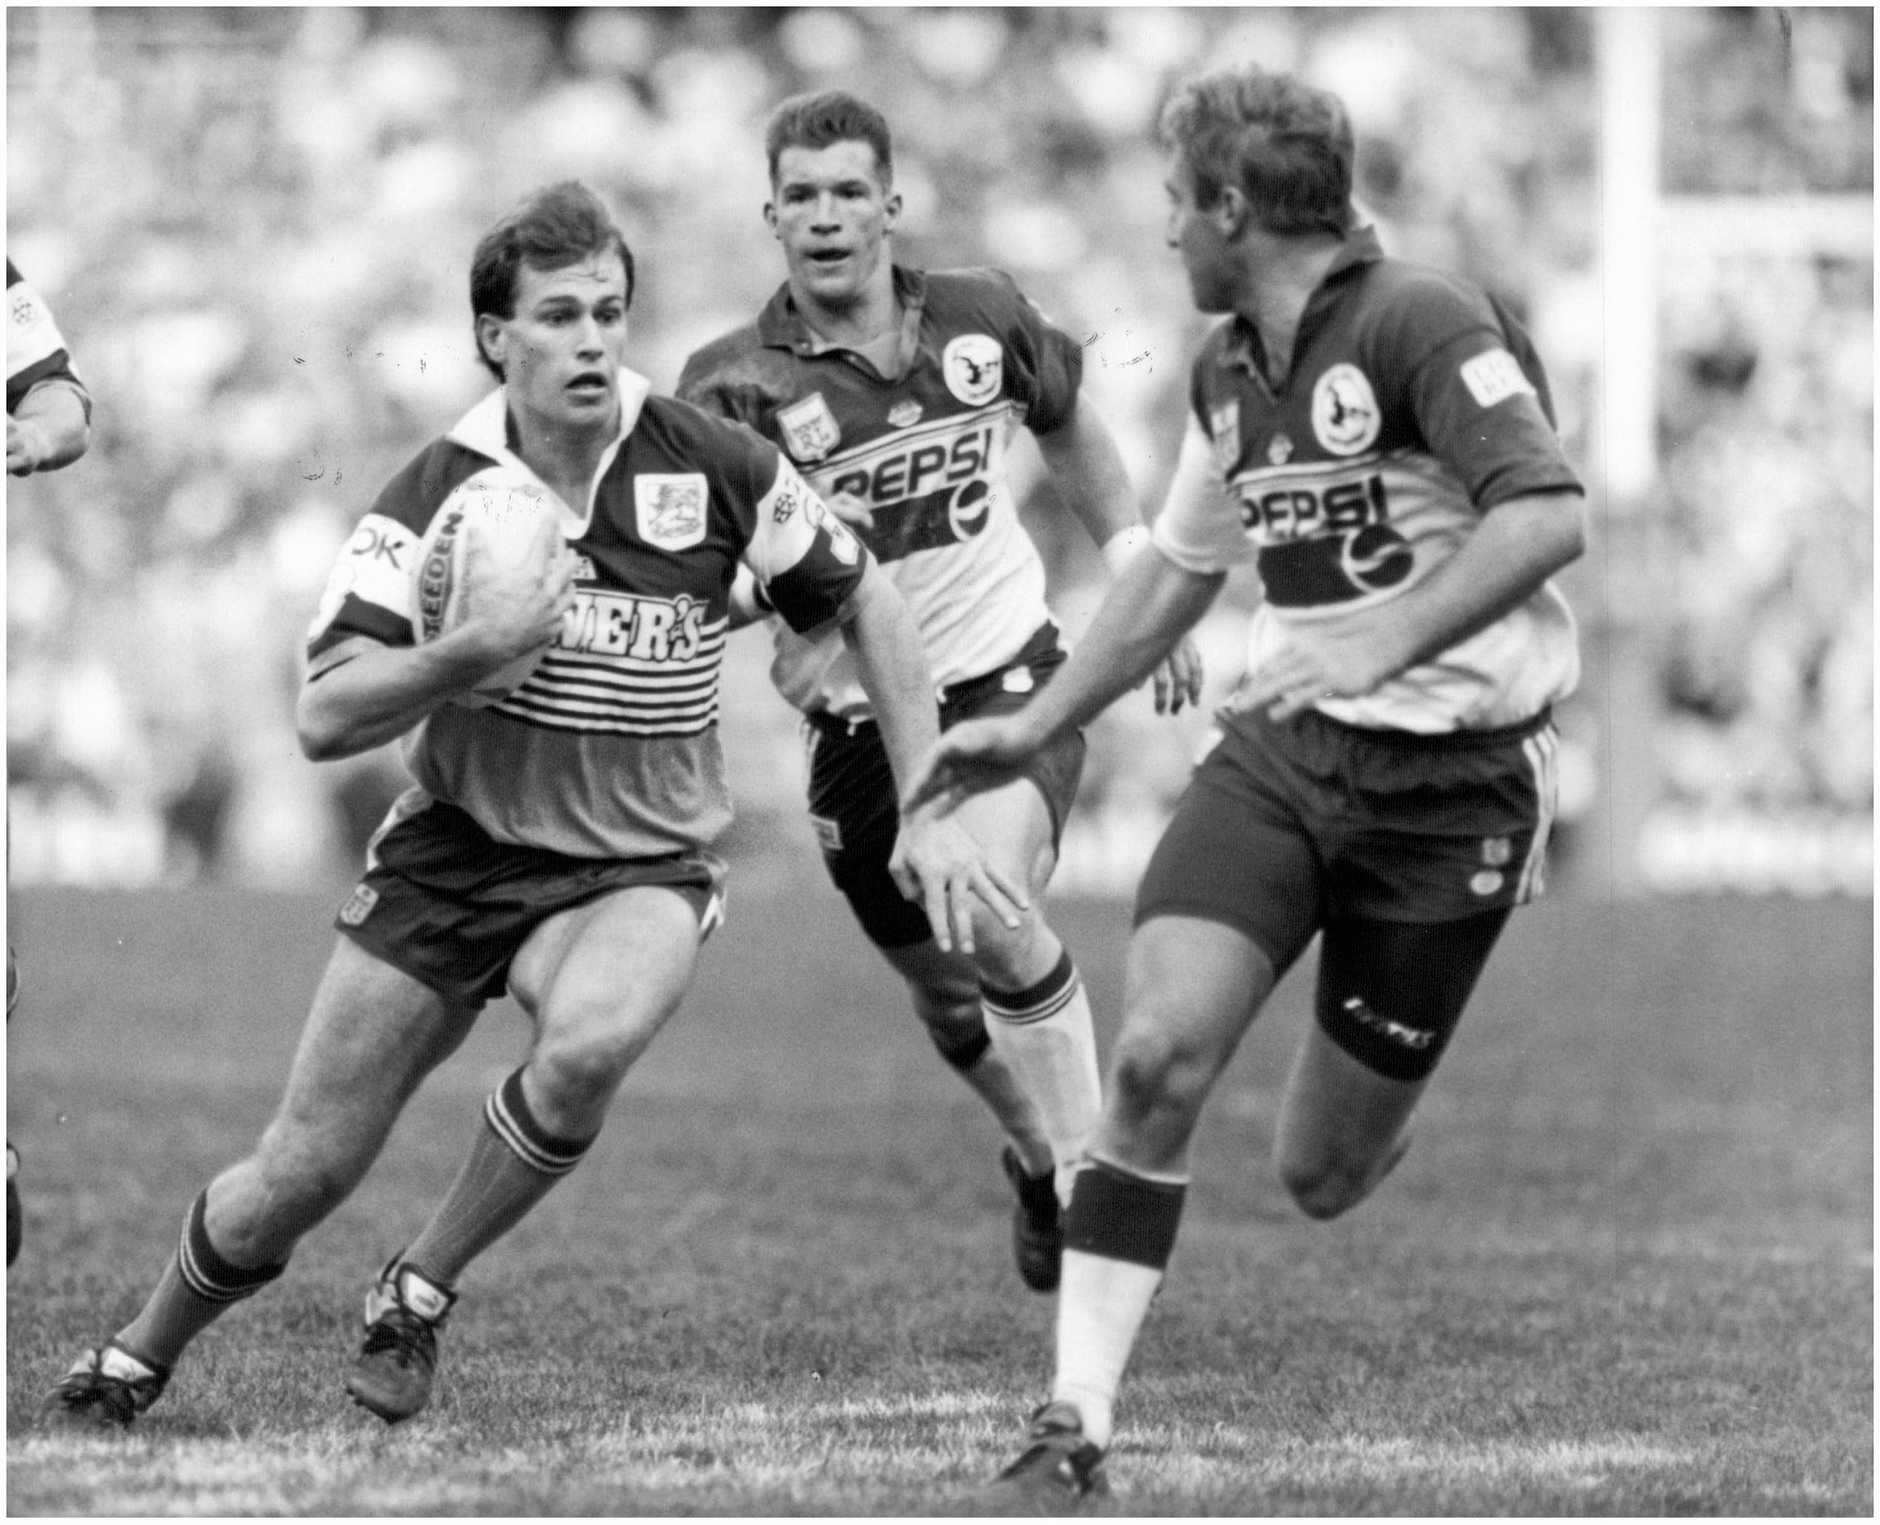 Willie Carne playing for the Brisbane Broncos.